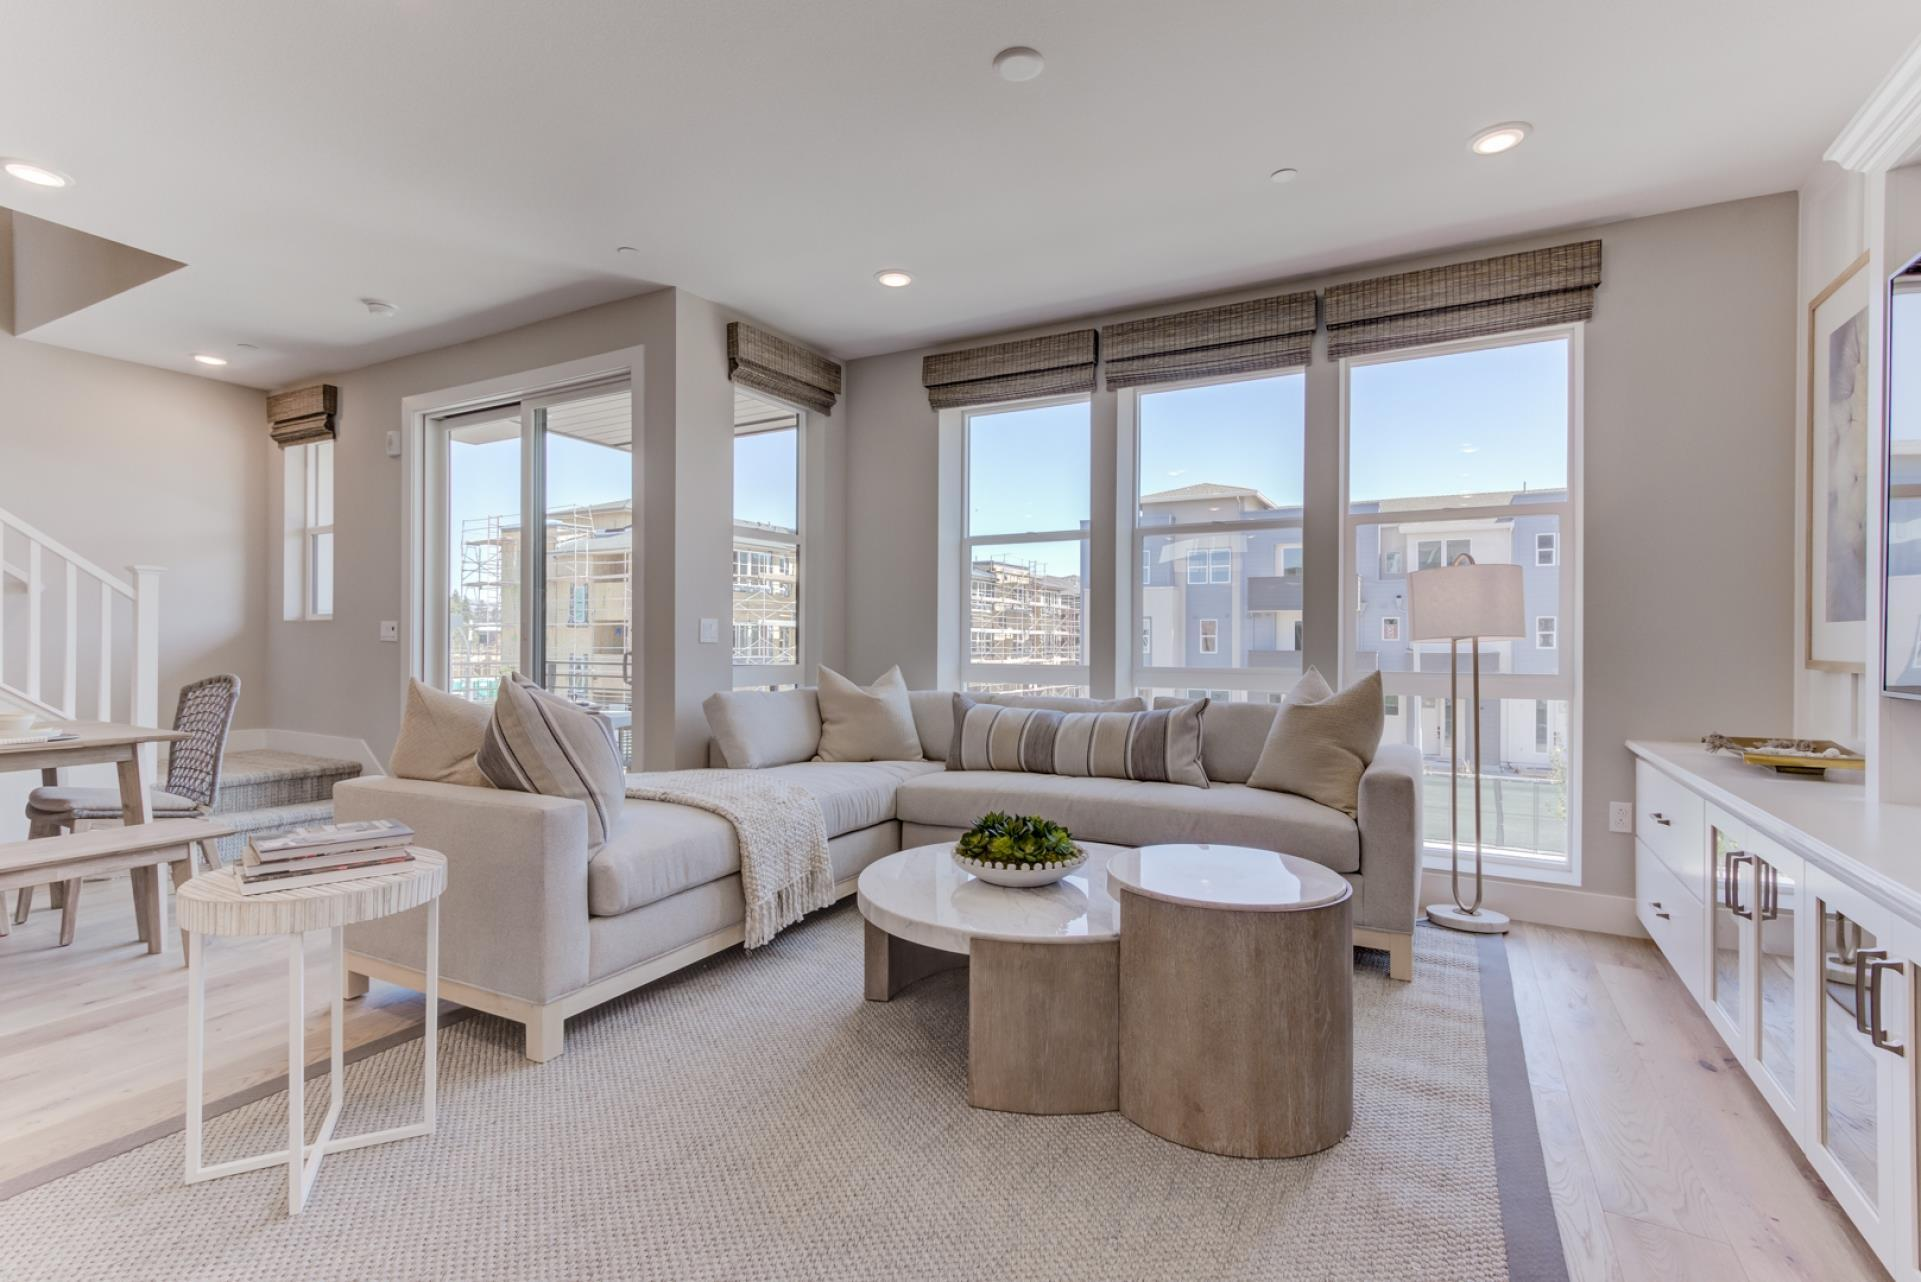 Living Area featured in the E-Town 1 By SummerHill Homes in San Jose, CA